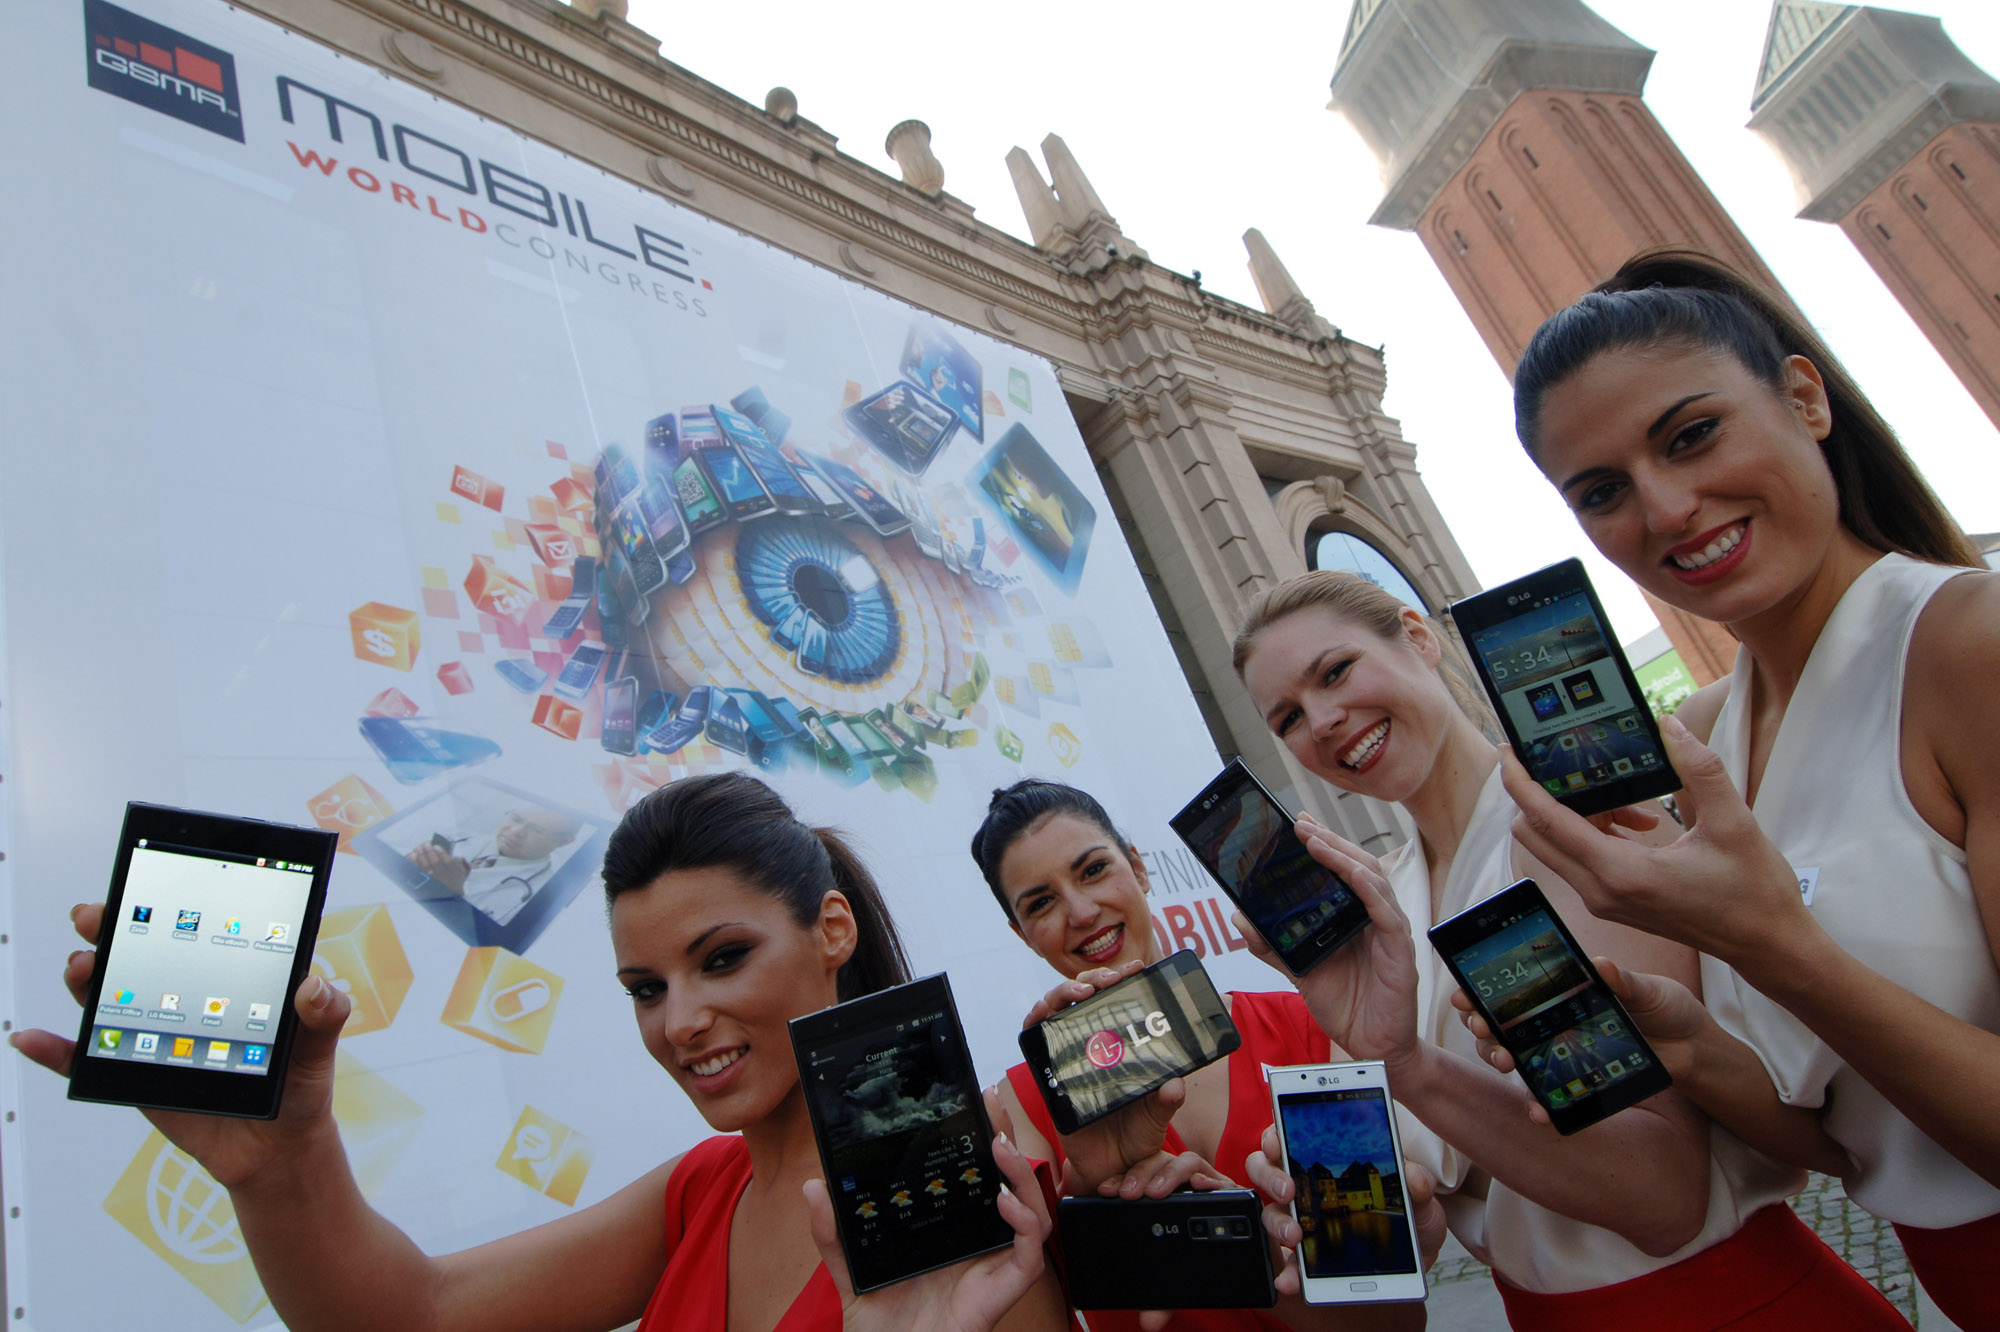 4 female models hold LG Optimus Vu:, LG Optimus 4X HD, LG Optimus 3D Max and LG Optimus L7 and show its front and rear views in front of the main entrance of Fira de Barcelona, Montjuïc venue